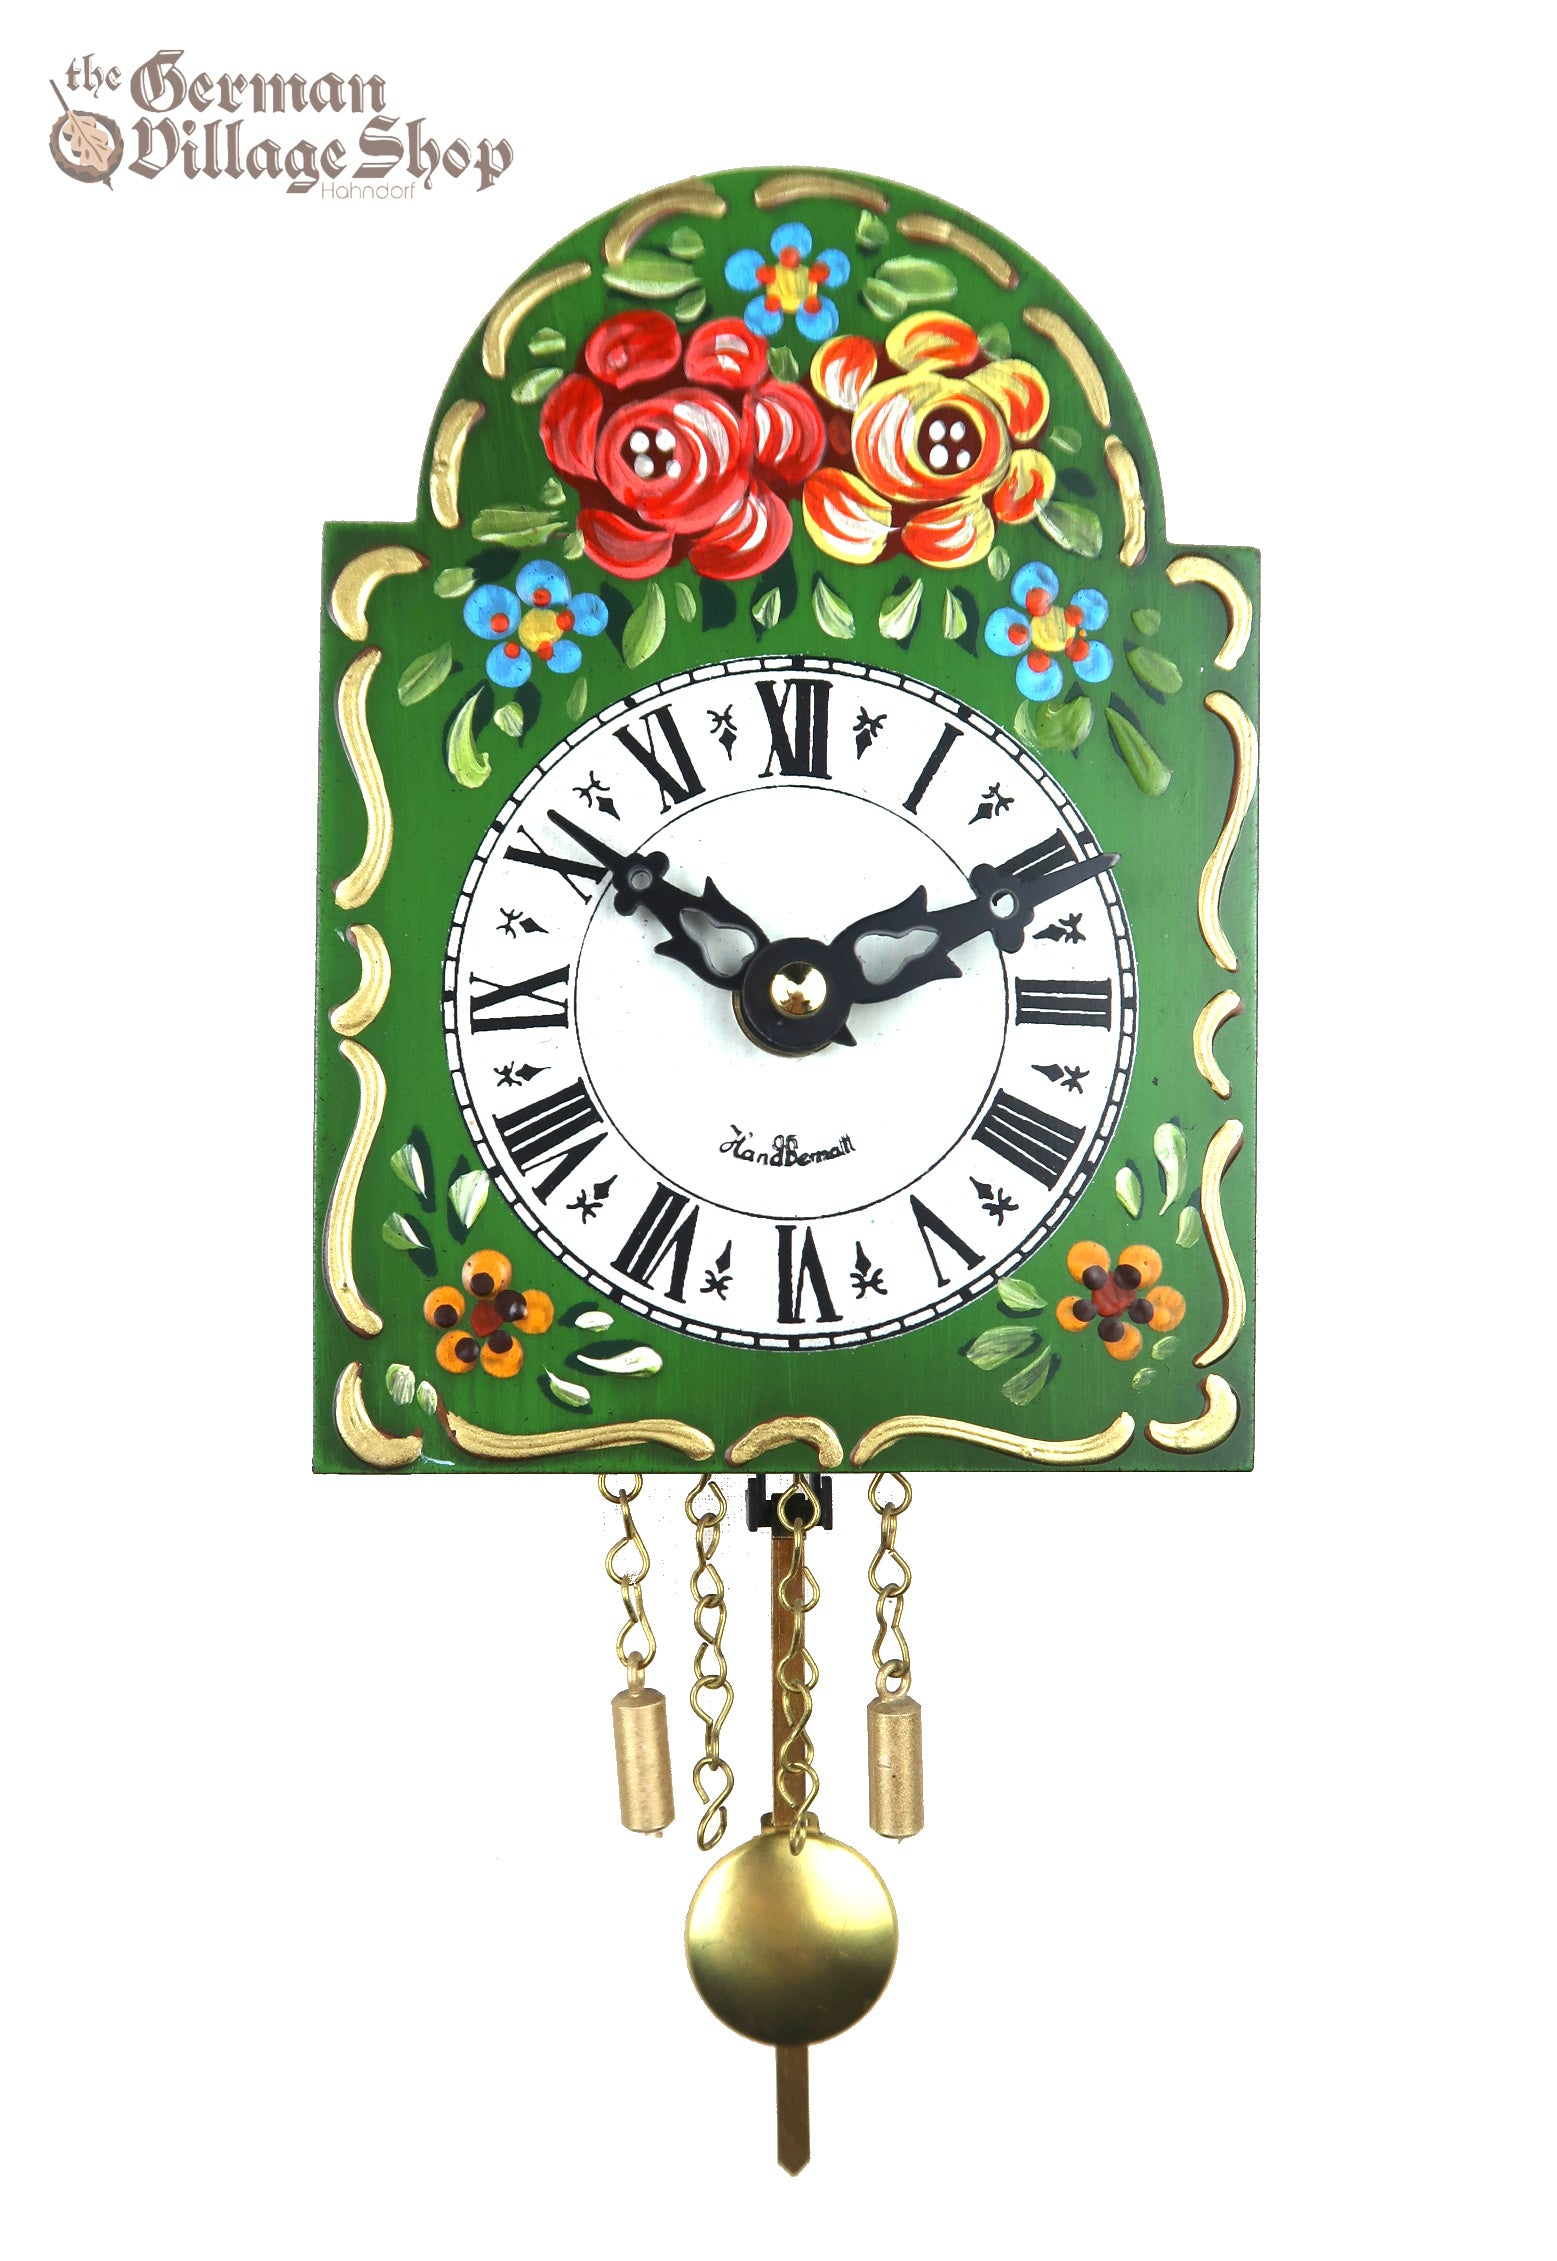 Kuckoolino Cuckoo Clock Shield design for sale in Australia